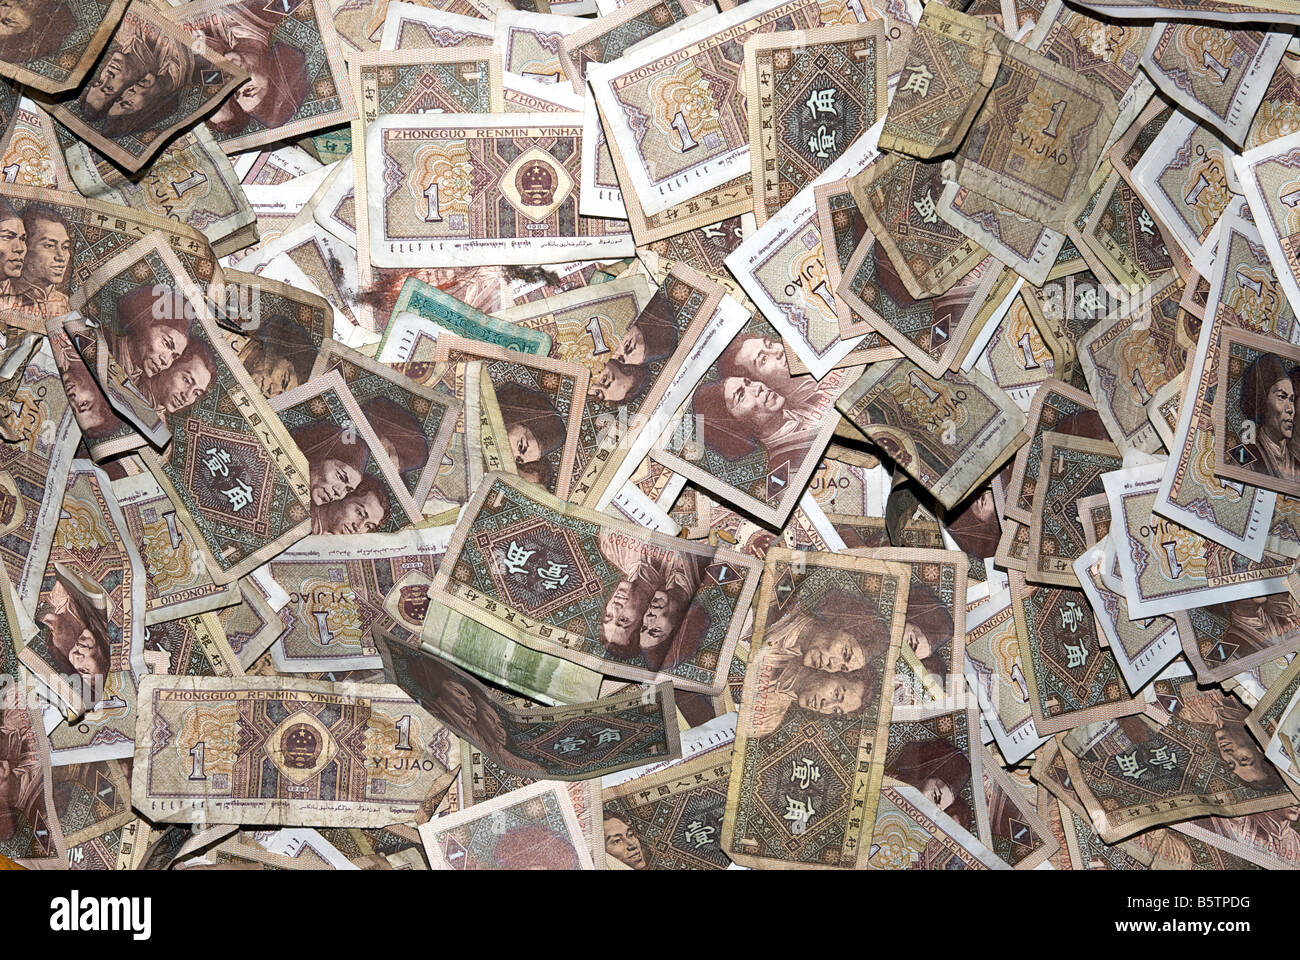 Pile of Chinese currency banknotes - Stock Image